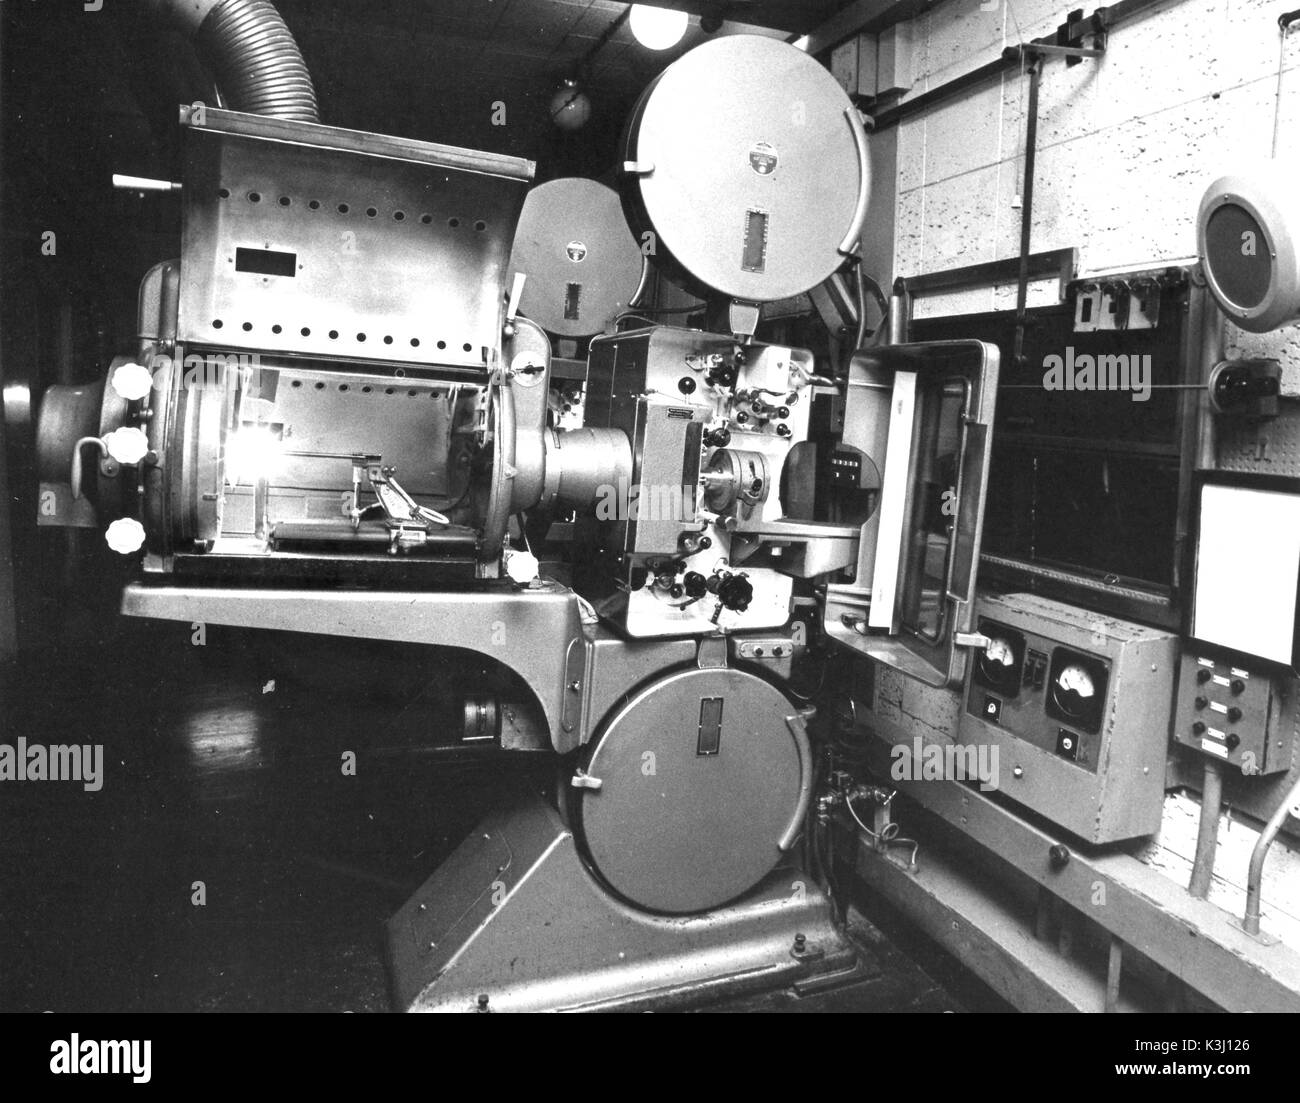 Projection room, showing the Phillips DP70 dual gauge 35/70mm projectors, with Peerless Magnarc carbon arc lamphouses of the COLUMBIA THEATRE, SHAFTESBURY AVENUE, LONDON, the name of the cinema when it opened in 1959. It was later renamed the CLASSIC SHAFTESBURY AVENUE in 1982, the PREMIERE in 1984, and the CURZON WEST END in 1985. It is now known as the CURZON, SOHO at time of writing - Stock Image